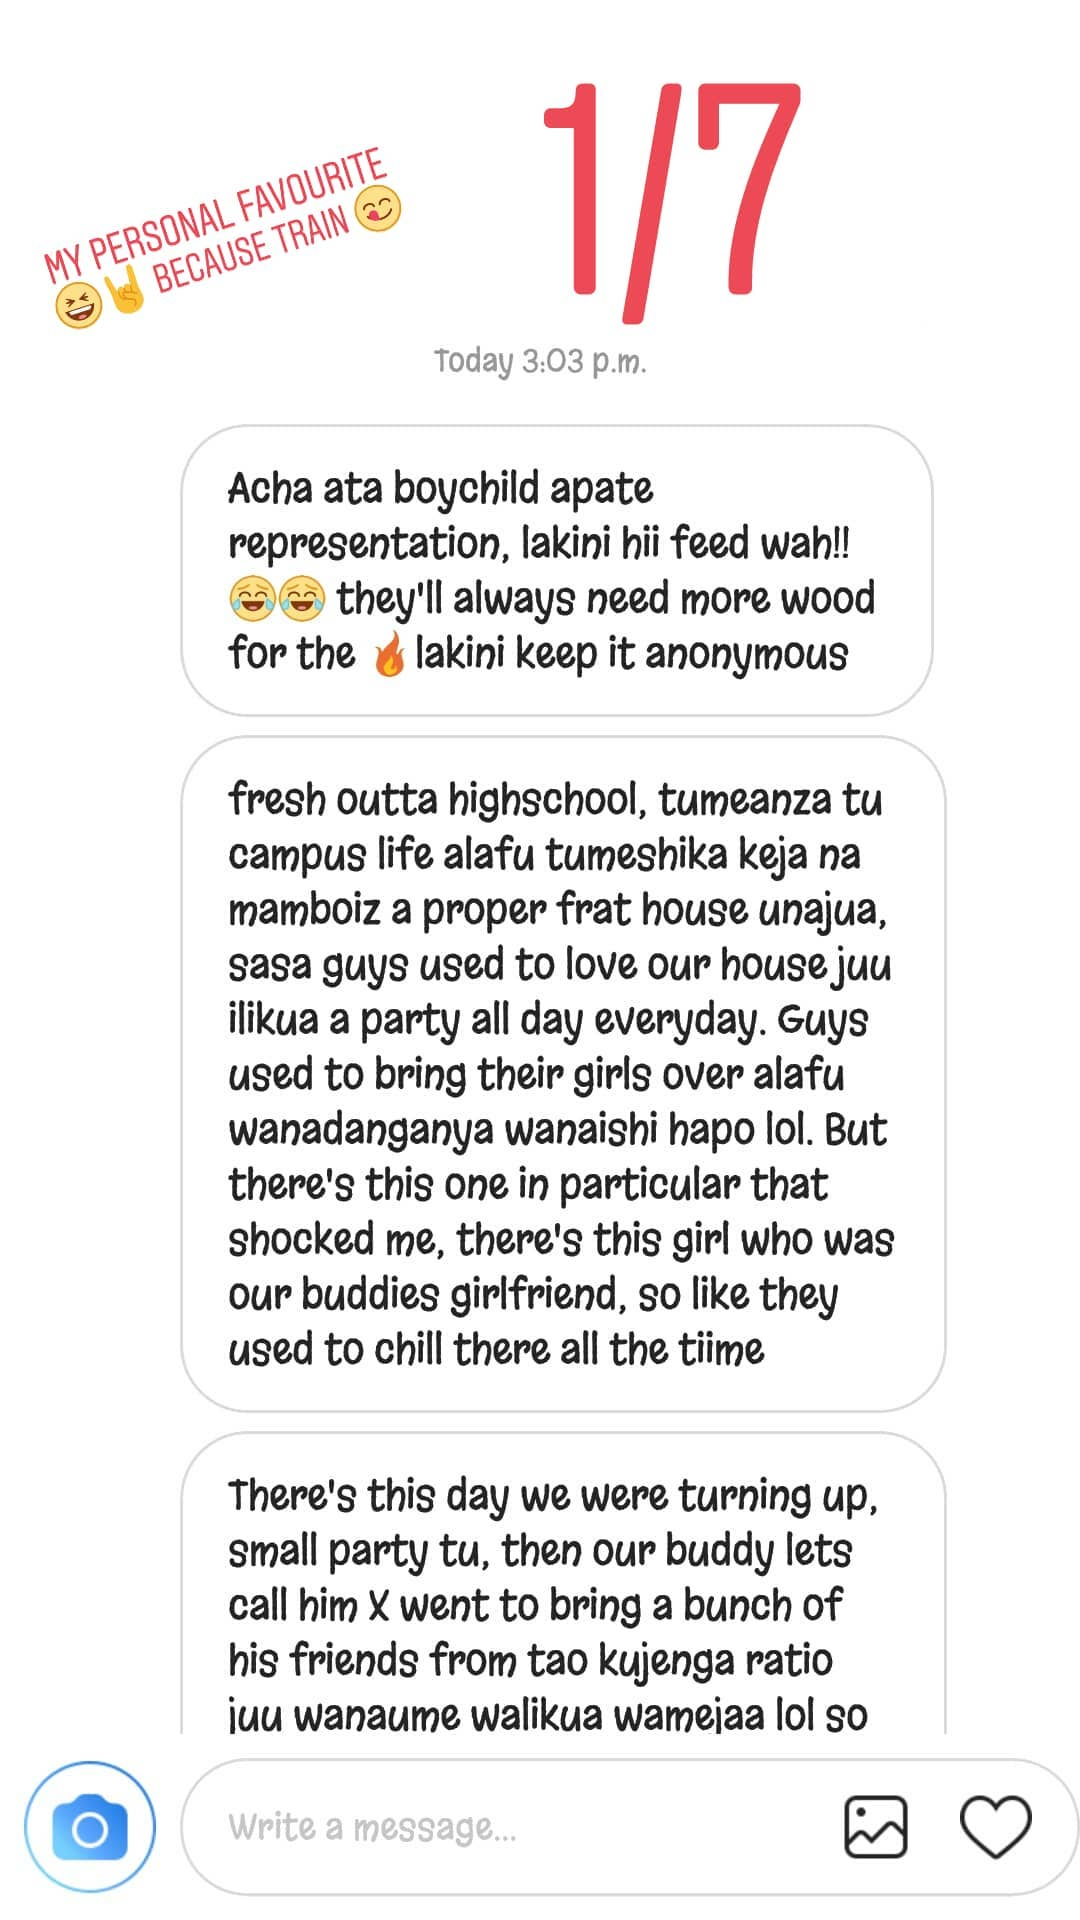 women112 - 'I smashed my girlfriend's sister and she tasted better,' Kenyans talk about cheating